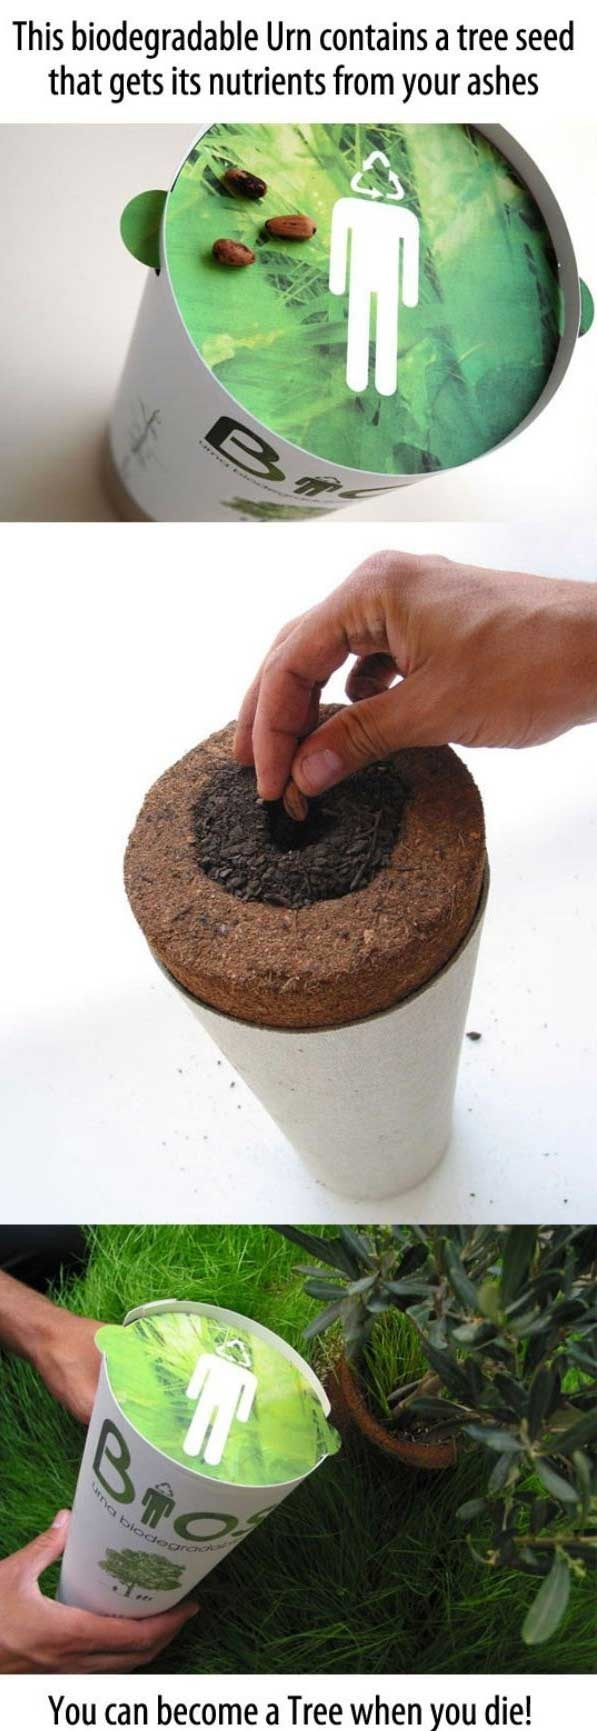 The Biodegradable Urn.....I'm in!